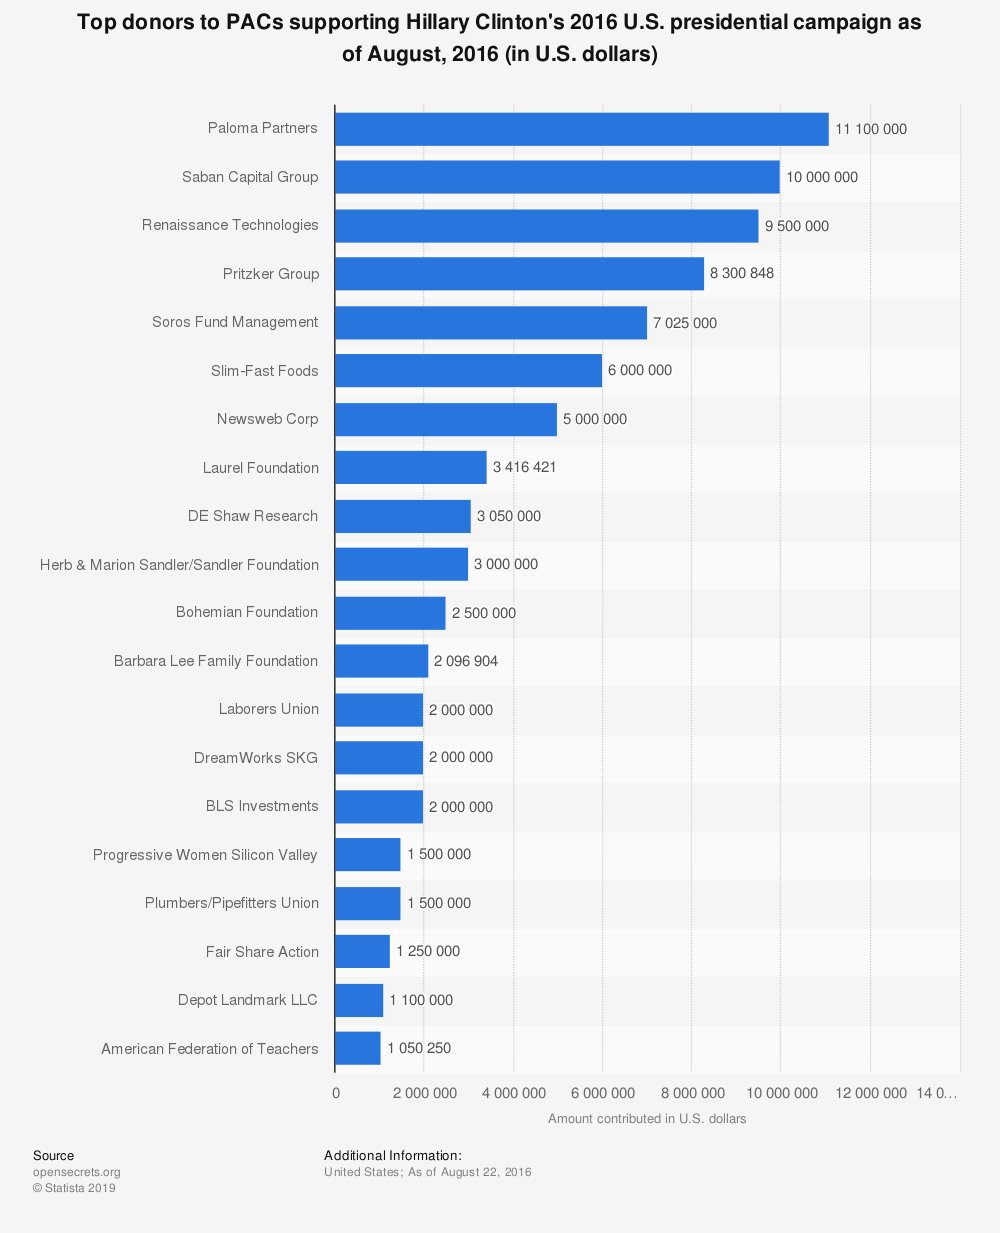 Statistic: Top donors to PACs supporting Hillary Clinton's 2016 U.S. presidential campaign as of August, 2016 (in U.S. dollars) | Statista